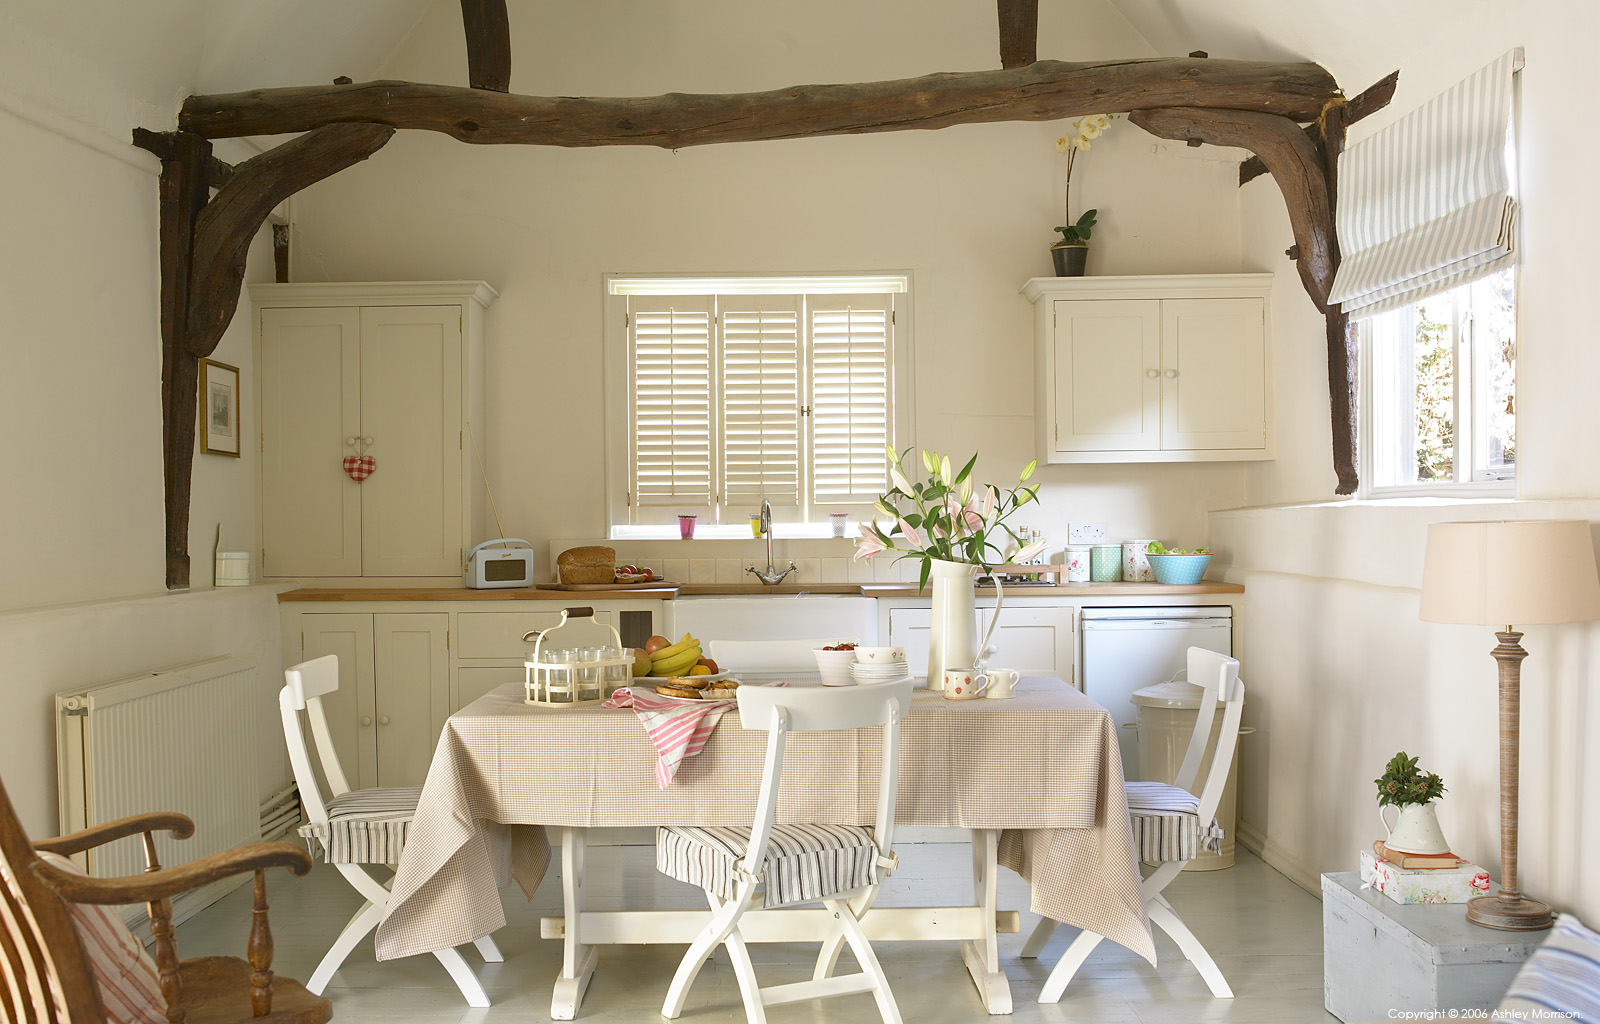 The kitchen in Sarah & Edward Bird's cottage at Dagley Farm in Surrey by Ashley Morrison.